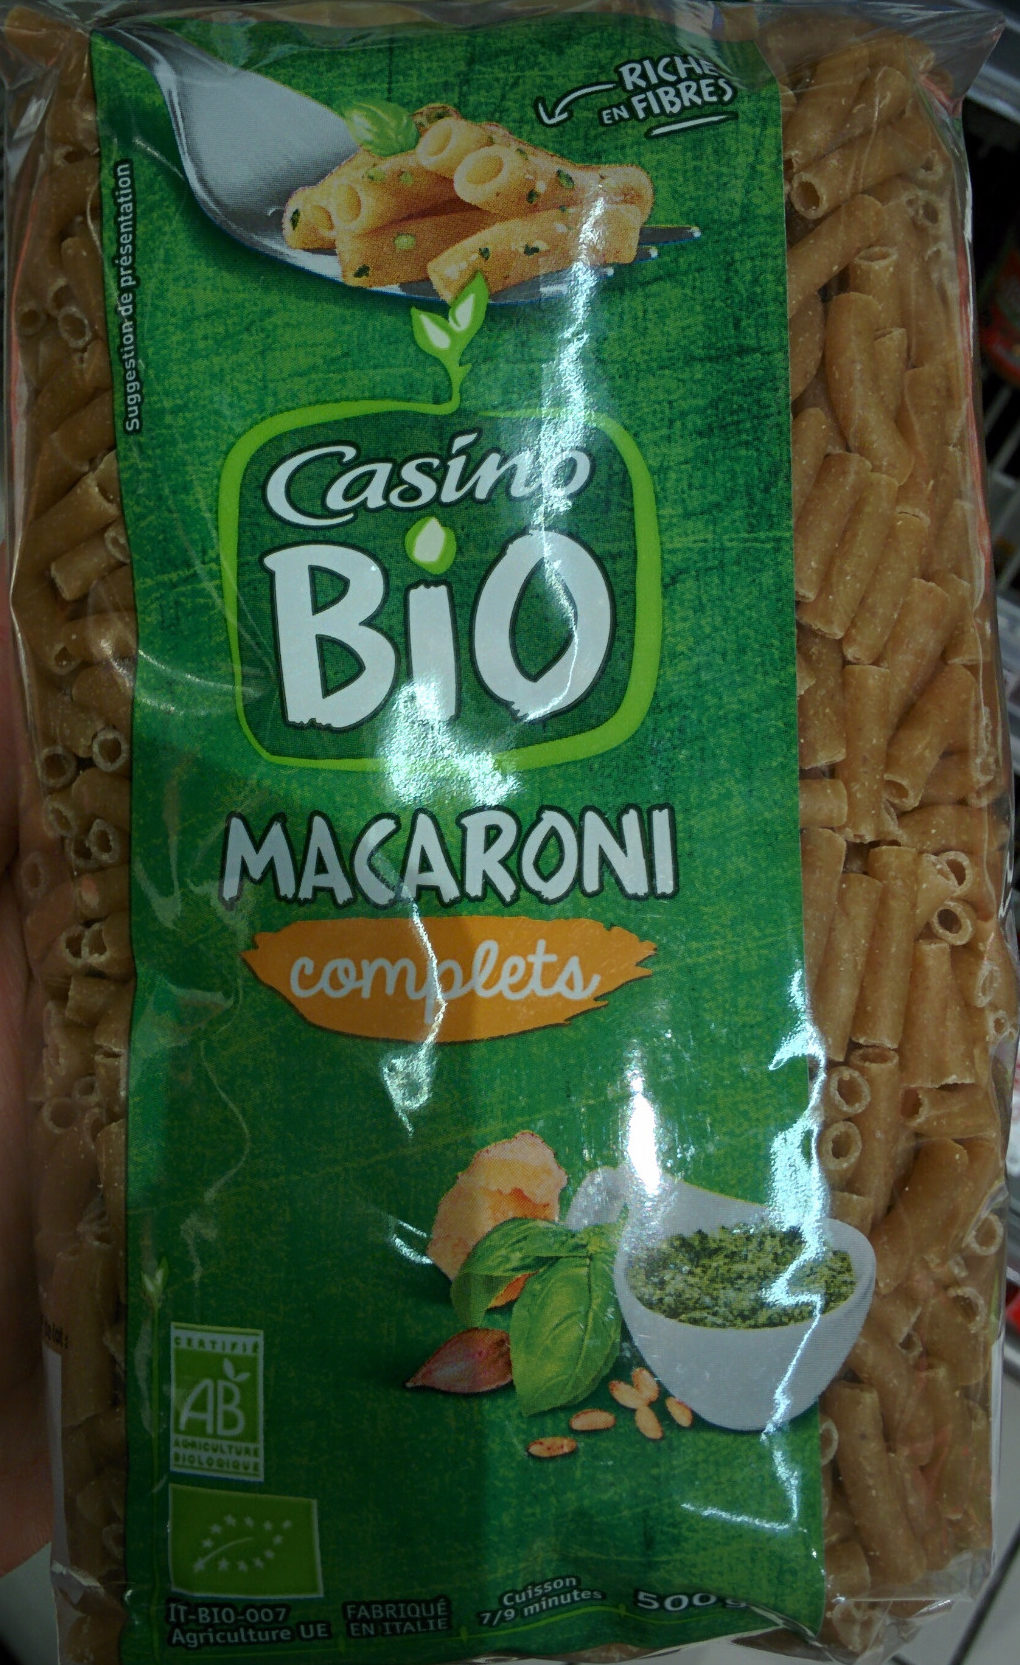 Macaroni complets - Product